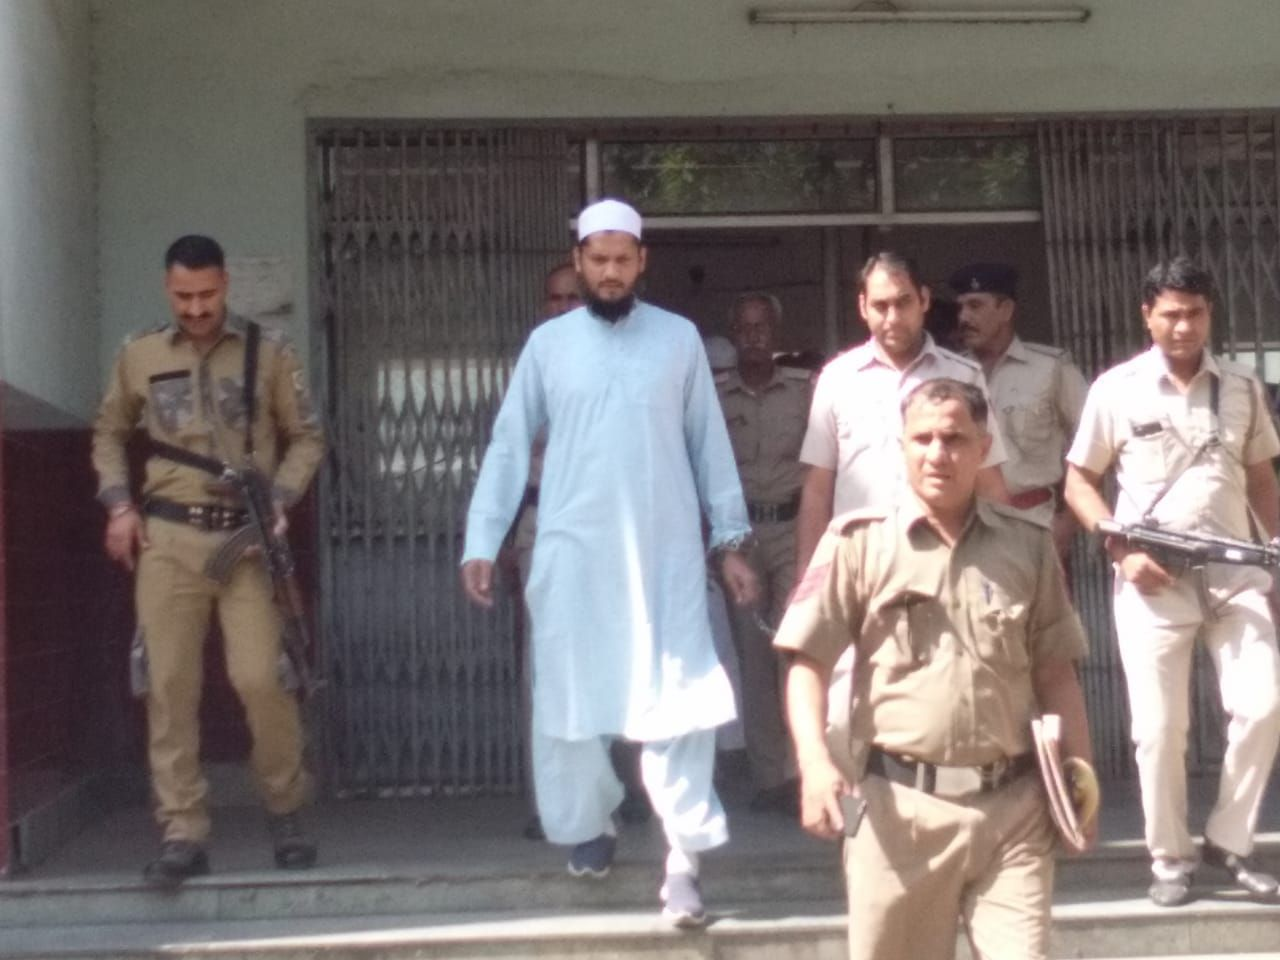 <p>Suspected militant Abdul Shami of Al-Qaeda was today presented in the Jamshedpur court. The arrest of Shami was made from Haryana's Mewat on the suspicion of having links with…